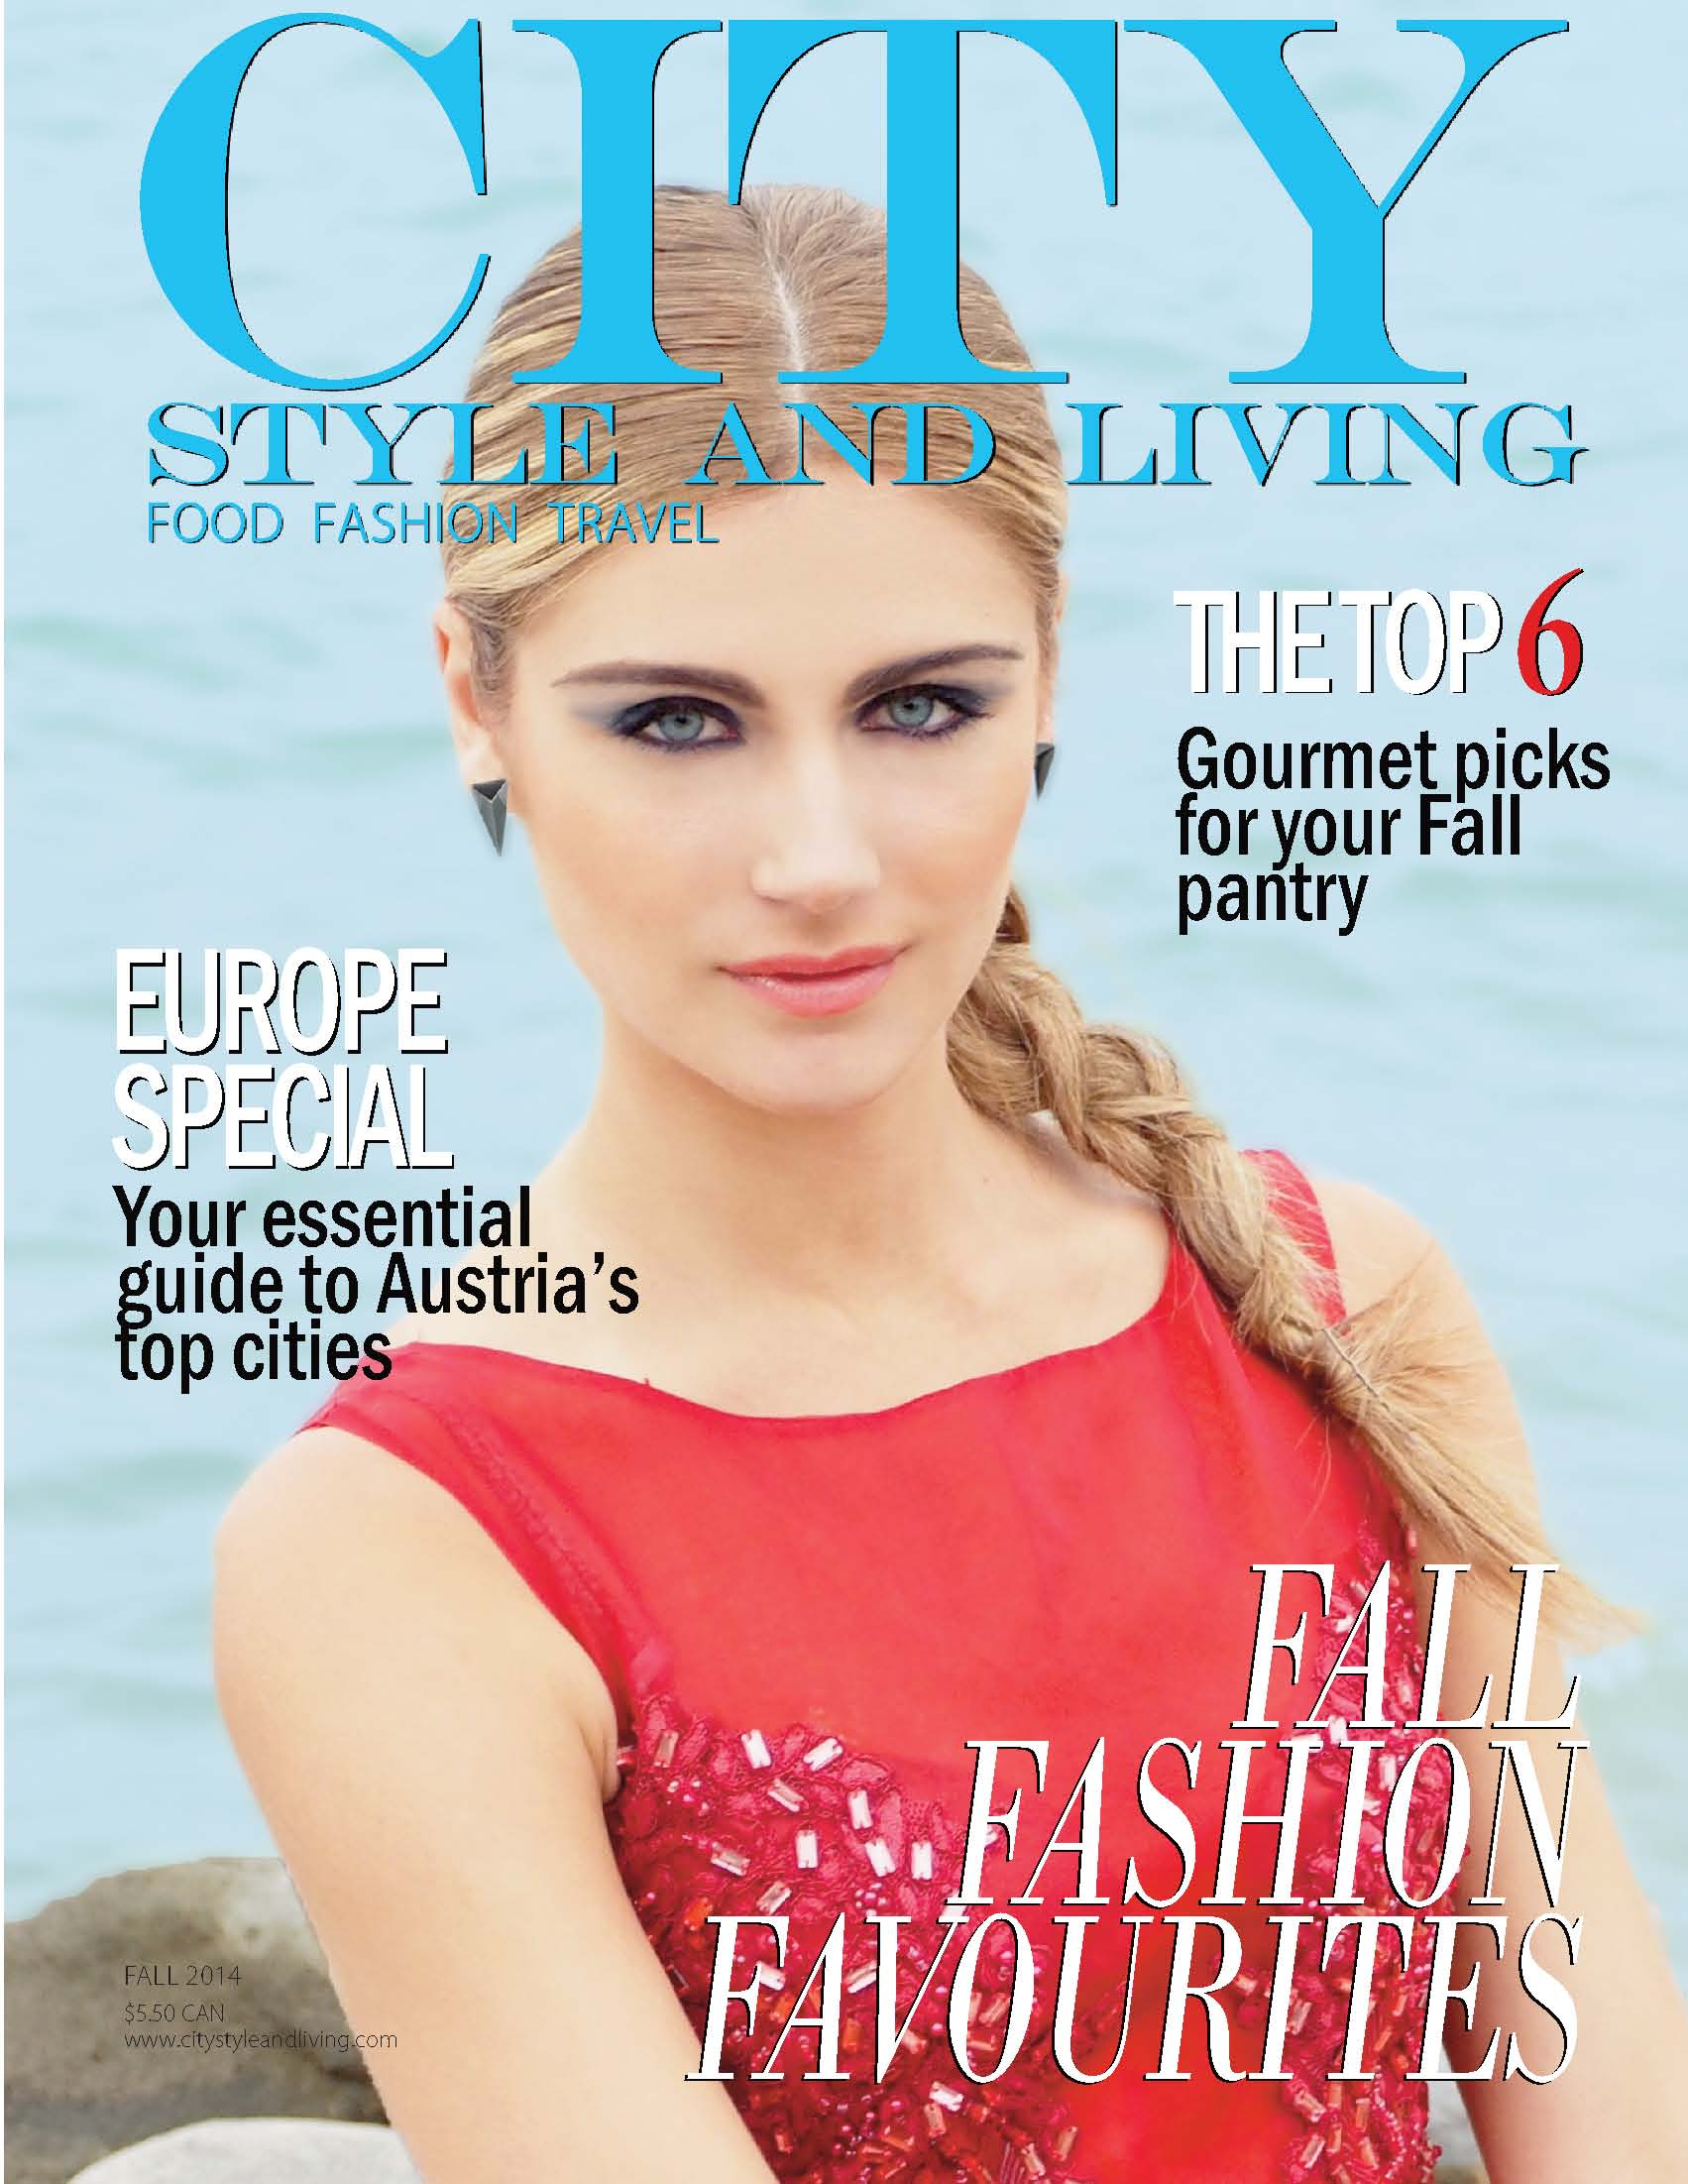 CSL_Fall2014 Cover food fashion travel luxury lifestyle